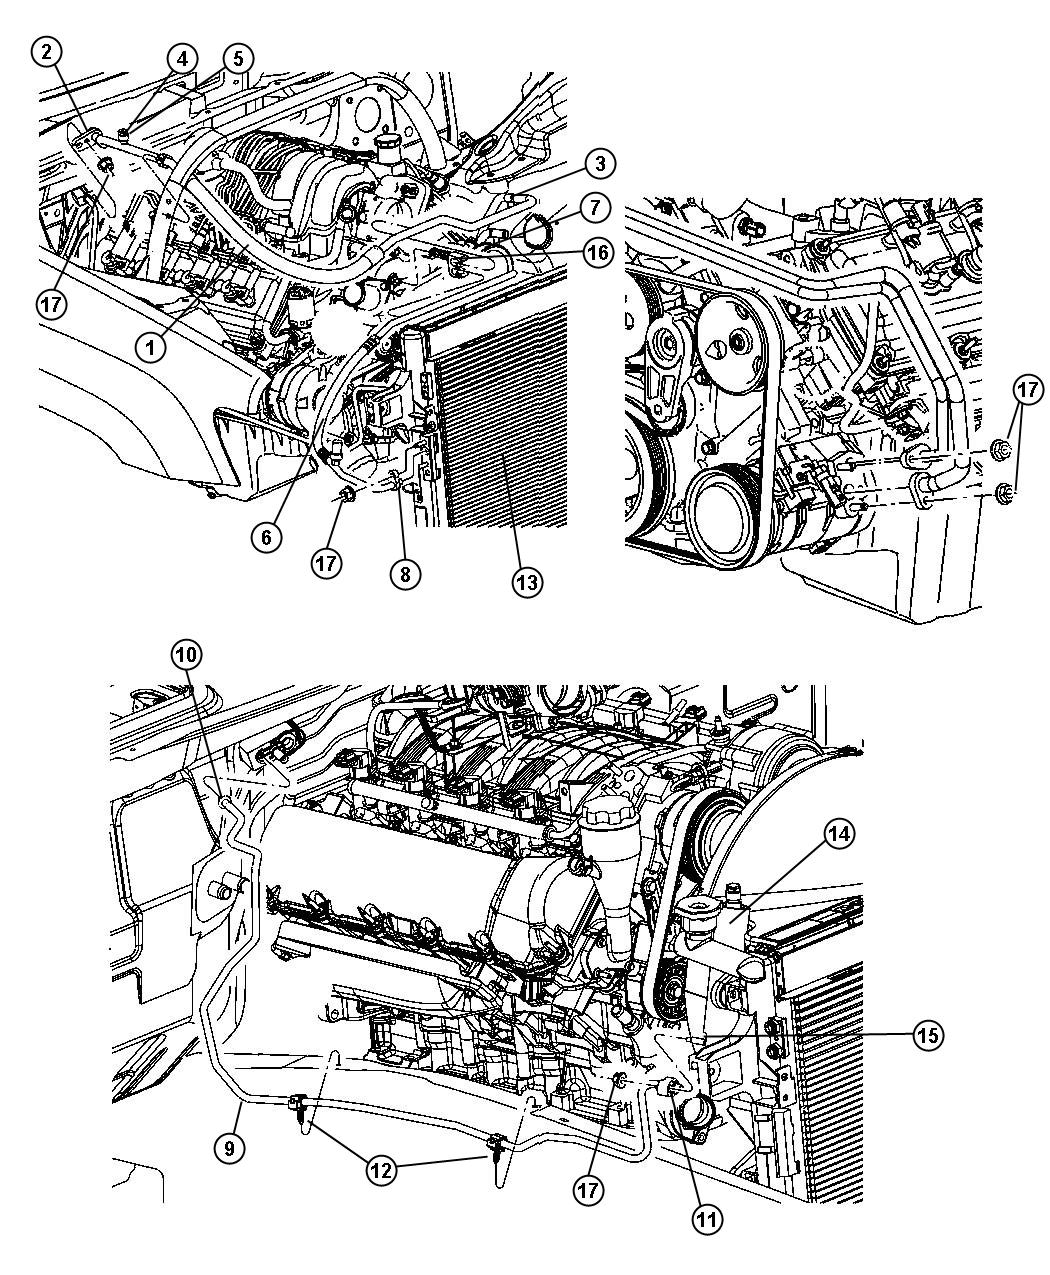 2010 Jeep Grand Cherokee Line  A  C Discharge  Engine  Hemi